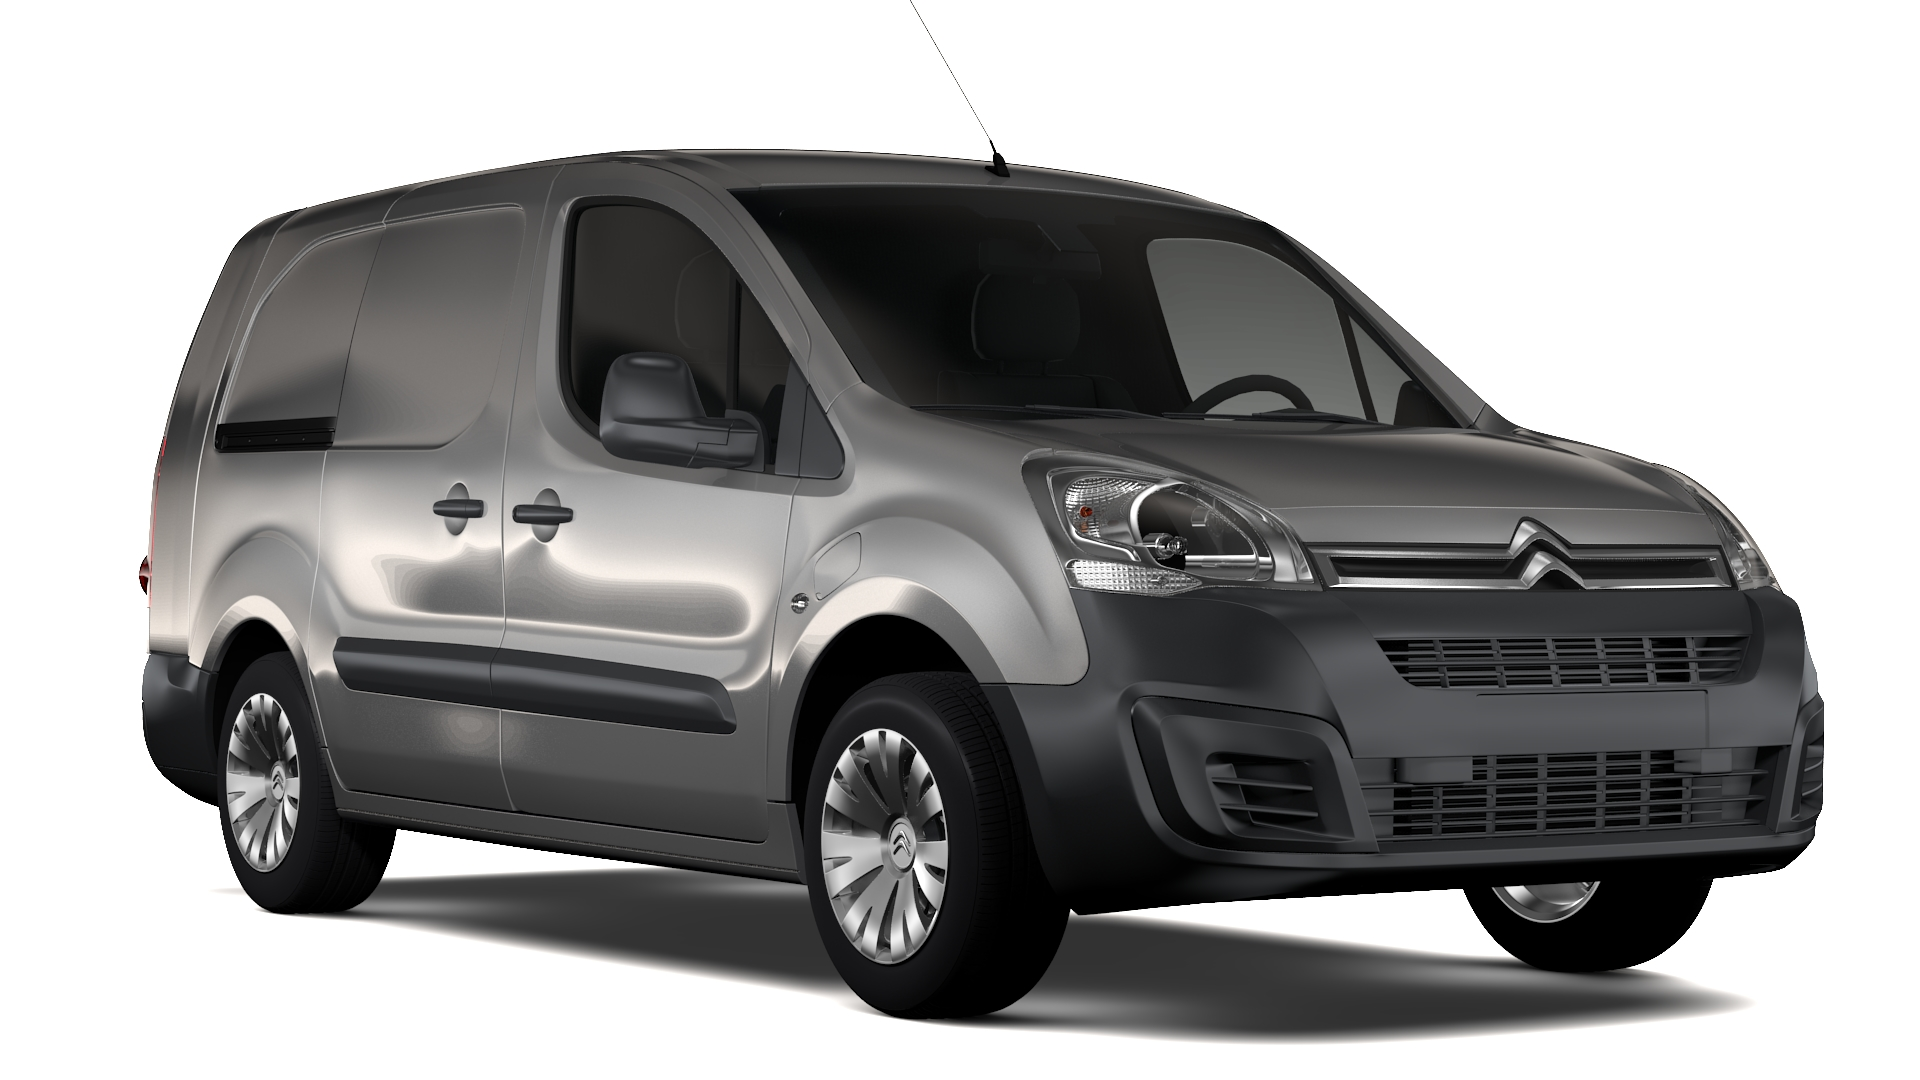 citroen berlingo van l2 full electric 2017 3d model buy citroen berlingo van l2 full electric. Black Bedroom Furniture Sets. Home Design Ideas